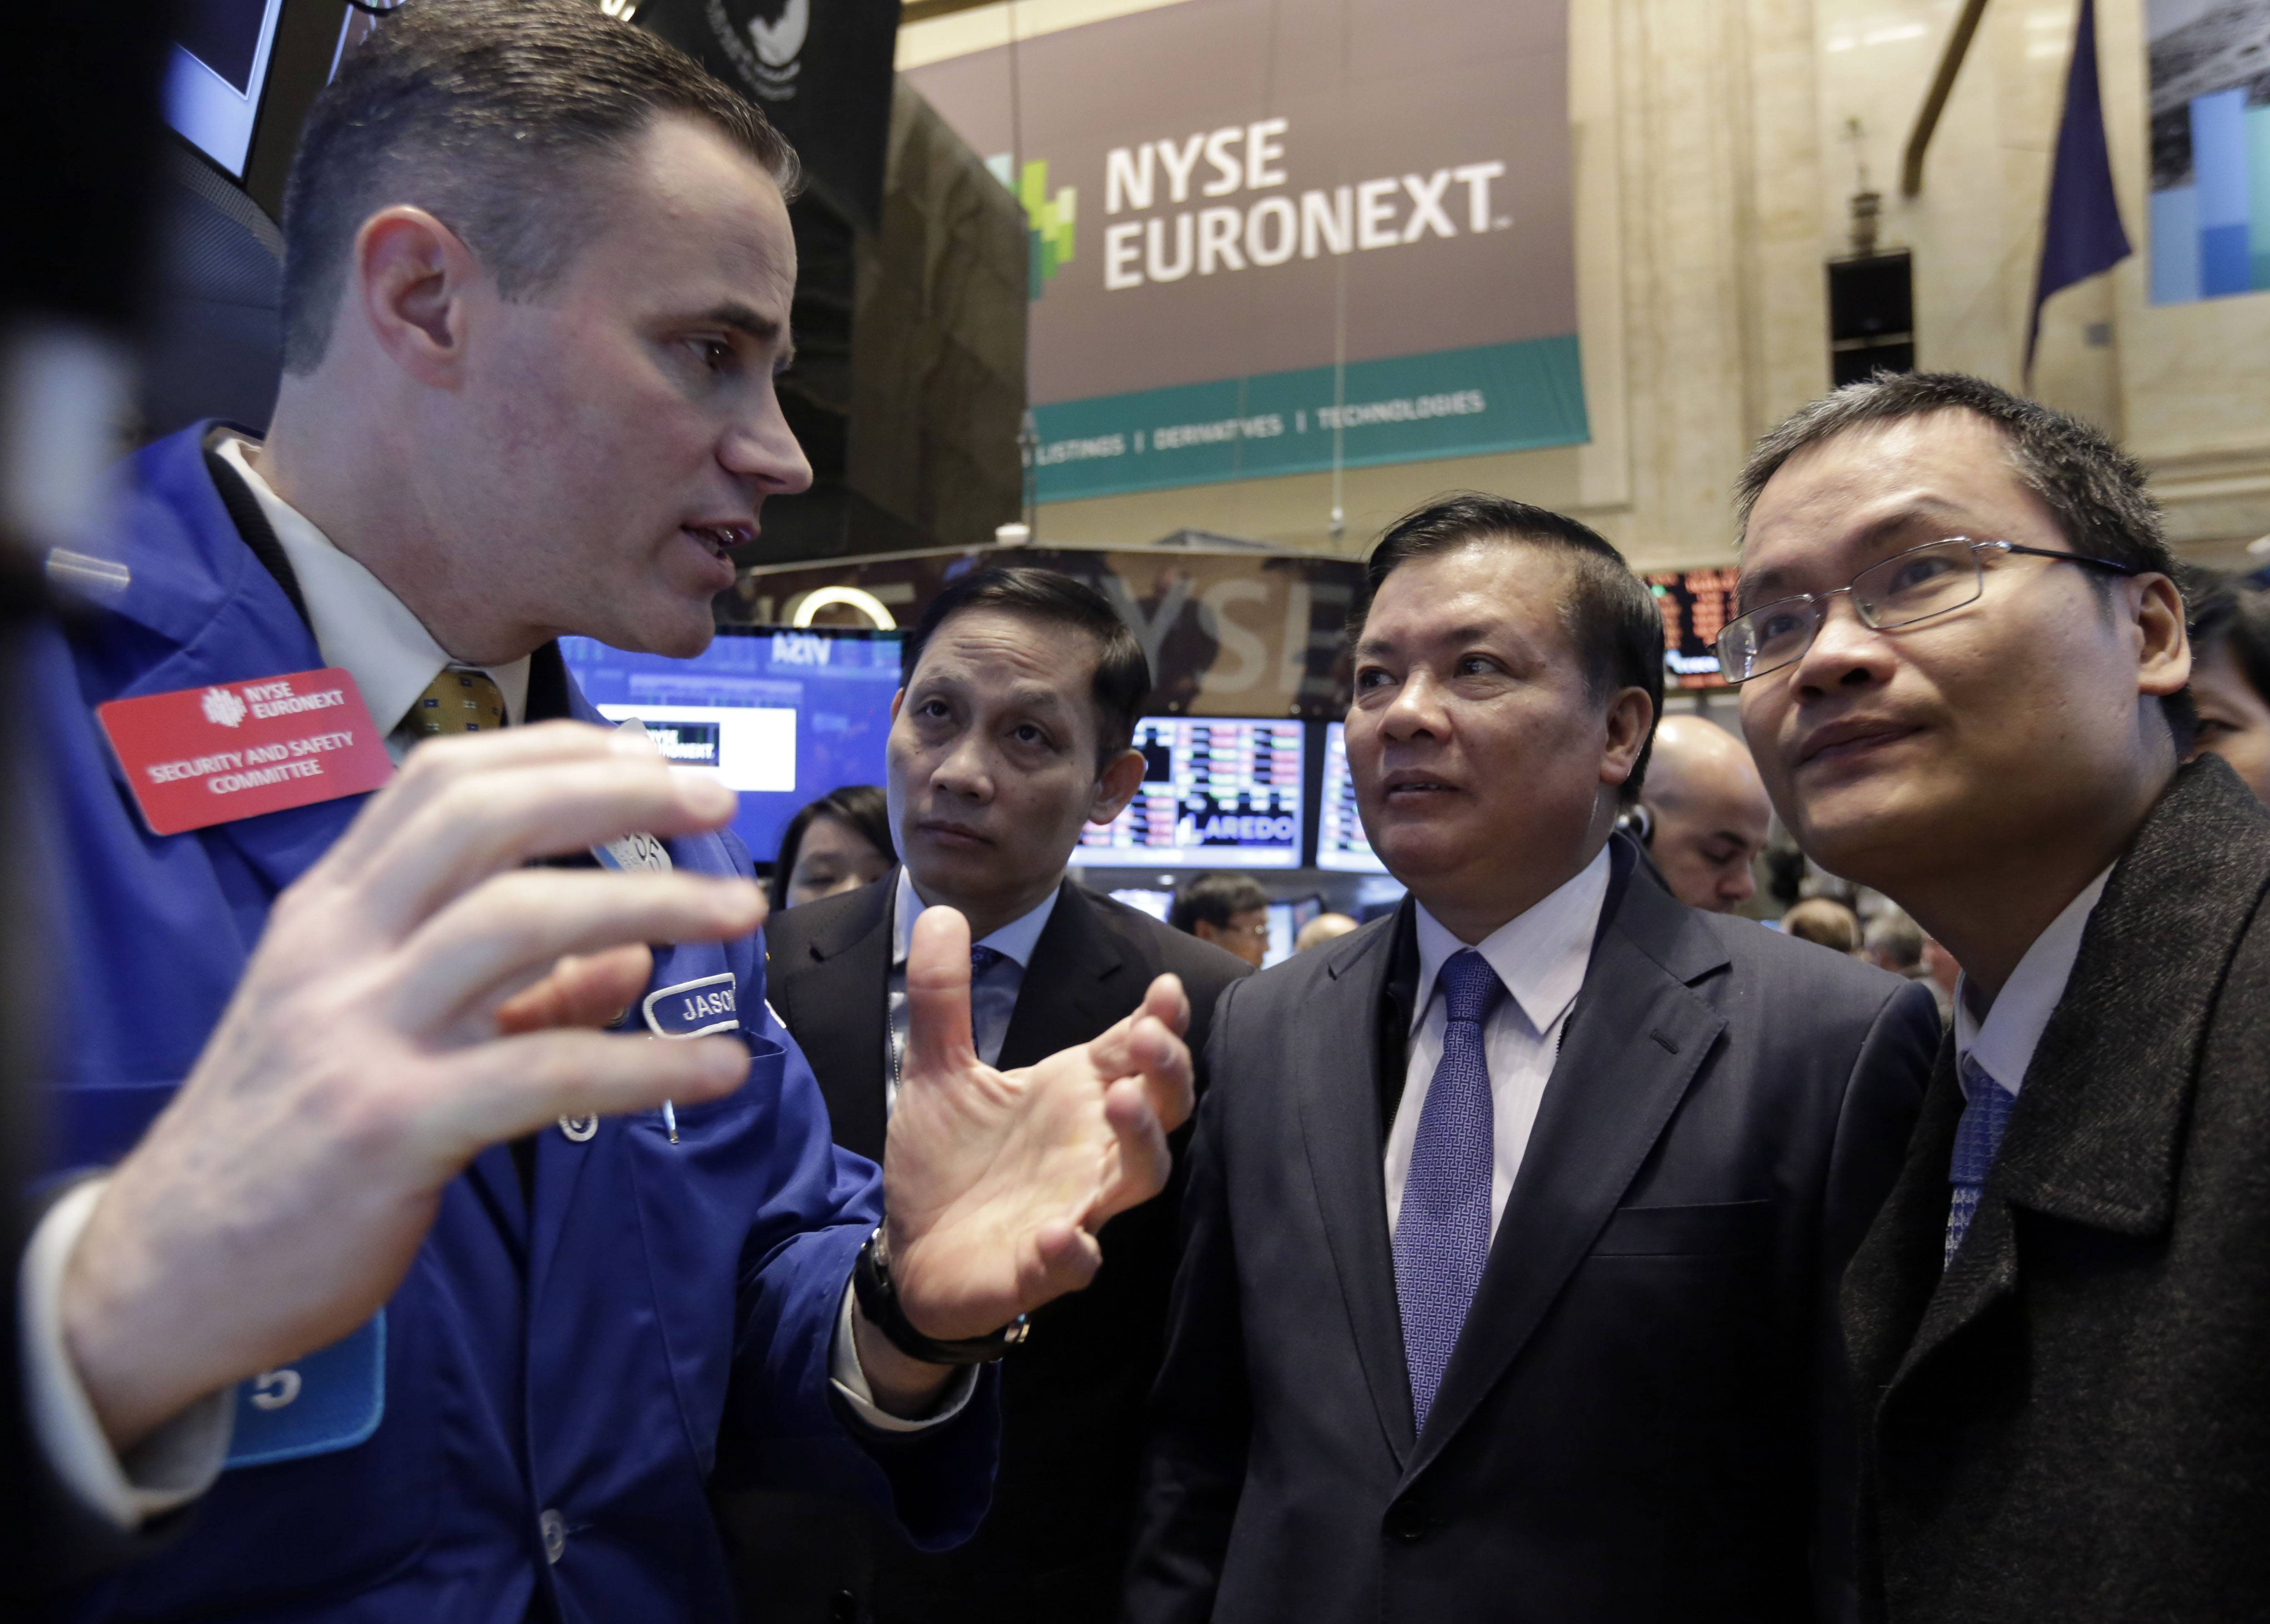 Vietnam's Finance Minister Dinh Tien Dung, second from right, visits the trading post of specialist Jason Hardzewicz on the floor of the New York Stock Exchange Thursday. Stocks fell, erasing this year's gains for the Standard & Poor's 500 Index, as weaker- than-forecast data from China and tension in Ukraine overshadowed reports showing an improving American economy.